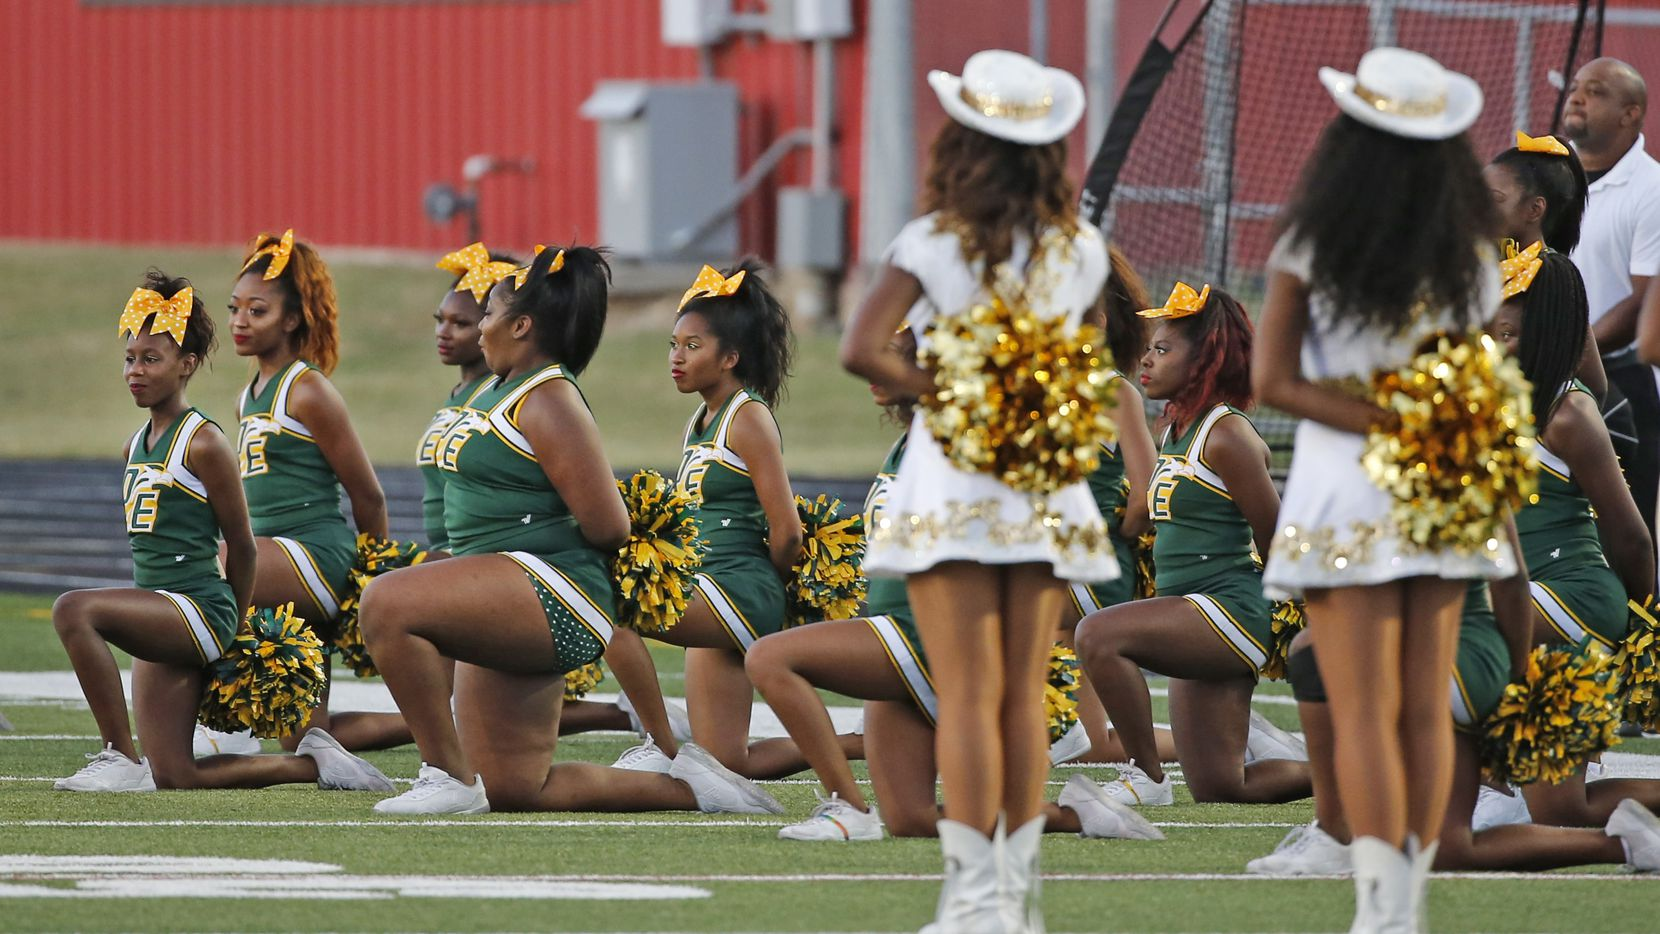 DeSoto cheerleaders take a knee during the playing of the national anthem before the DeSoto High School Eagles vs. the Cedar Hill High School Longhorns high school football game in Cedar Hill, Texas on Friday, September 23, 2016. The teams were not on the field at the time the anthem was played.